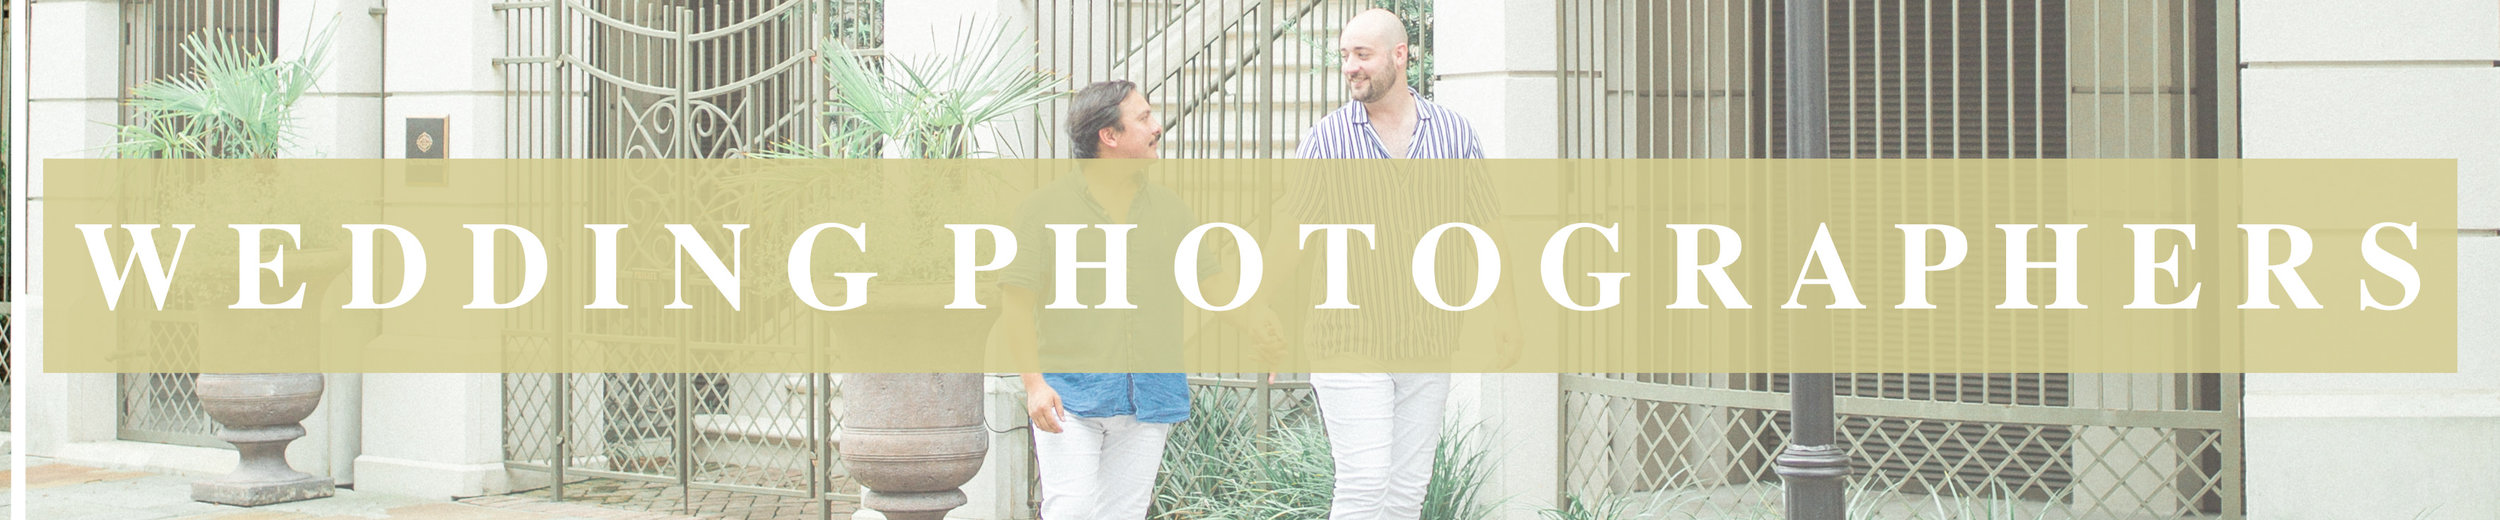 I Love That For You - 10 Reasons We Picked Our Wedding Photographer.JPG